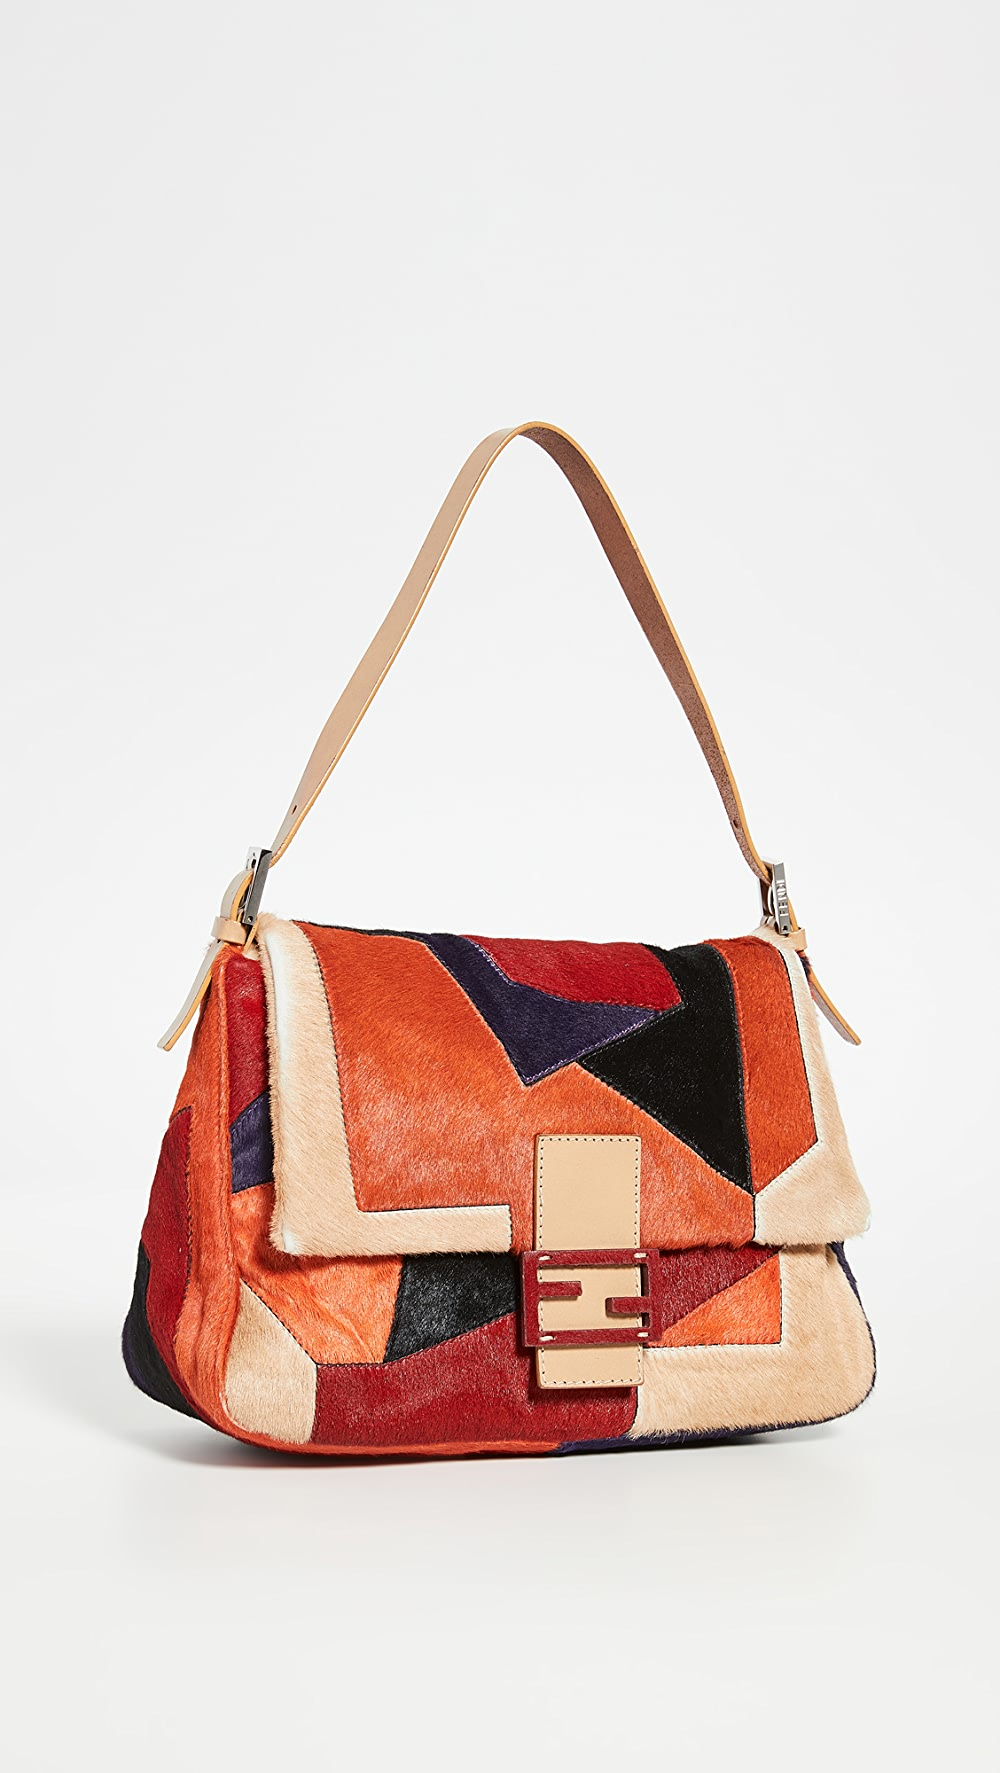 Hospitable What Goes Around Comes Around - Fendi Multi Pony Hair Mama Bag Wide Selection;